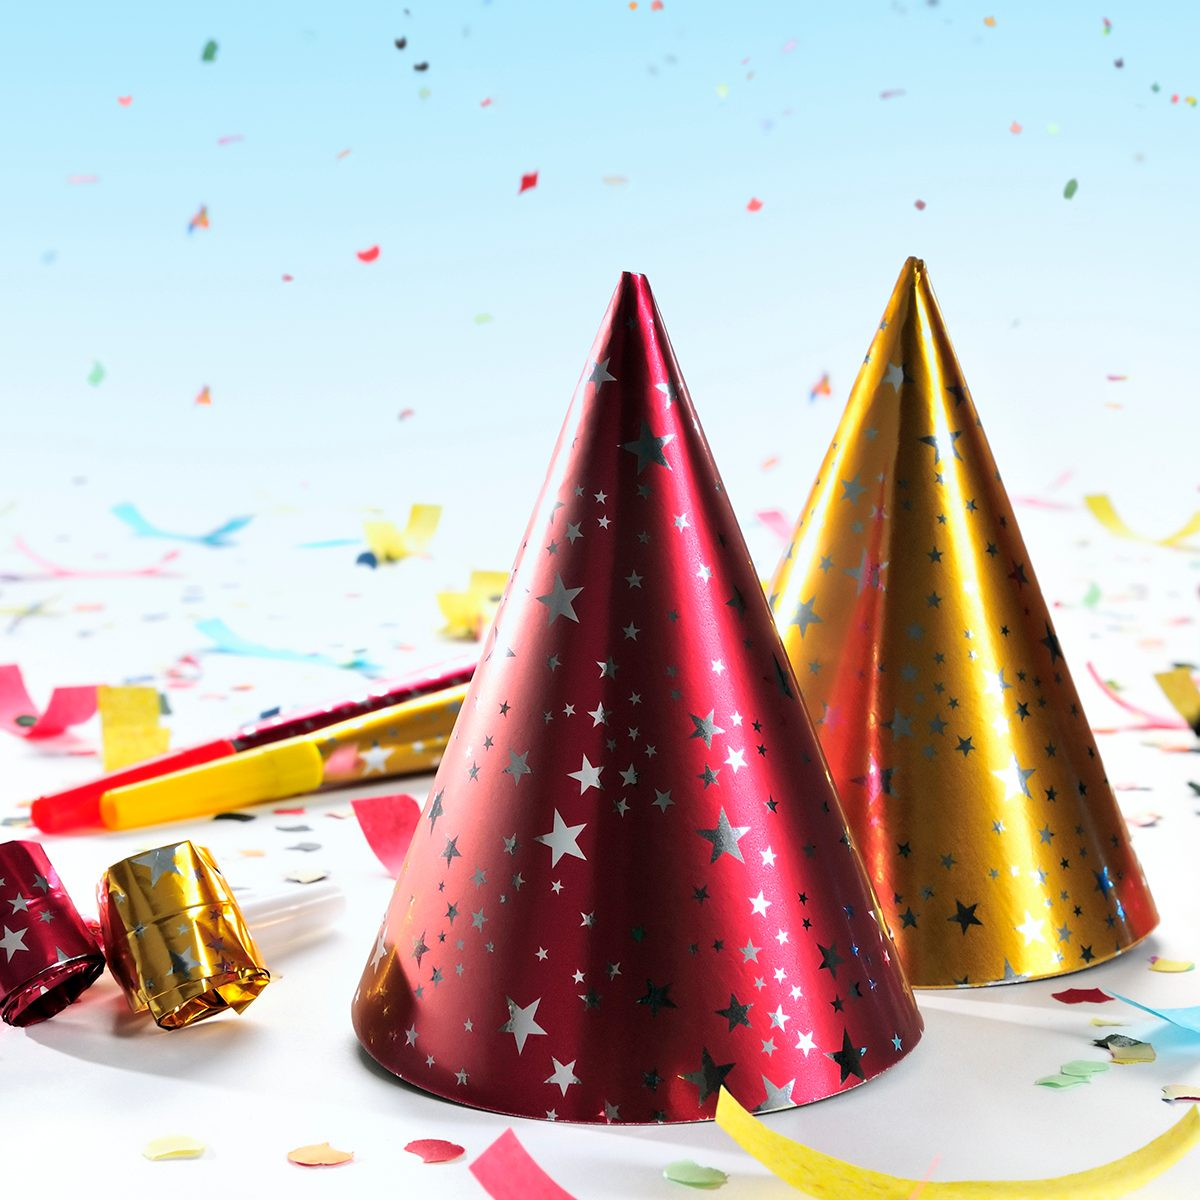 Party decorations: hats, whistles, horns, confetti on gradient blue background. Copy space, studio shot. This picture fits to New Year's, Parties, Birthdays topics.